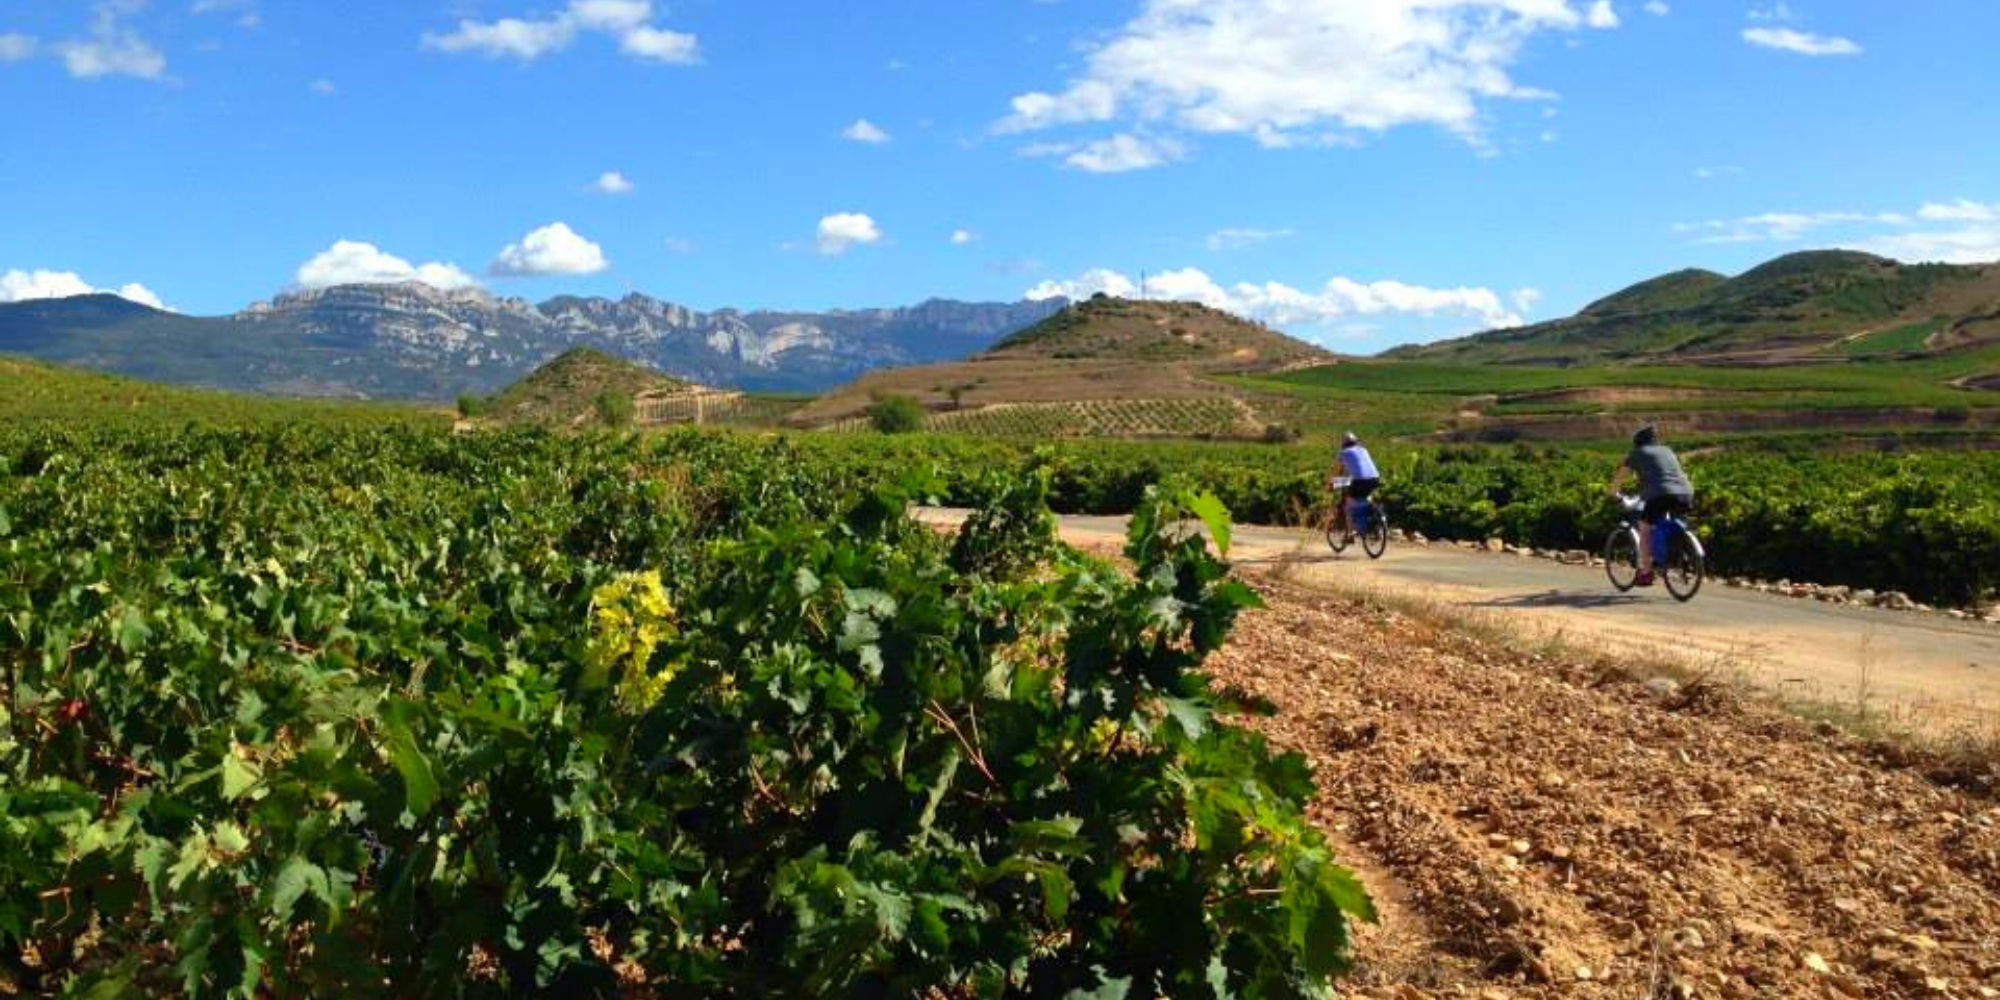 5 Fascinating Facts About The Rioja Wine Region